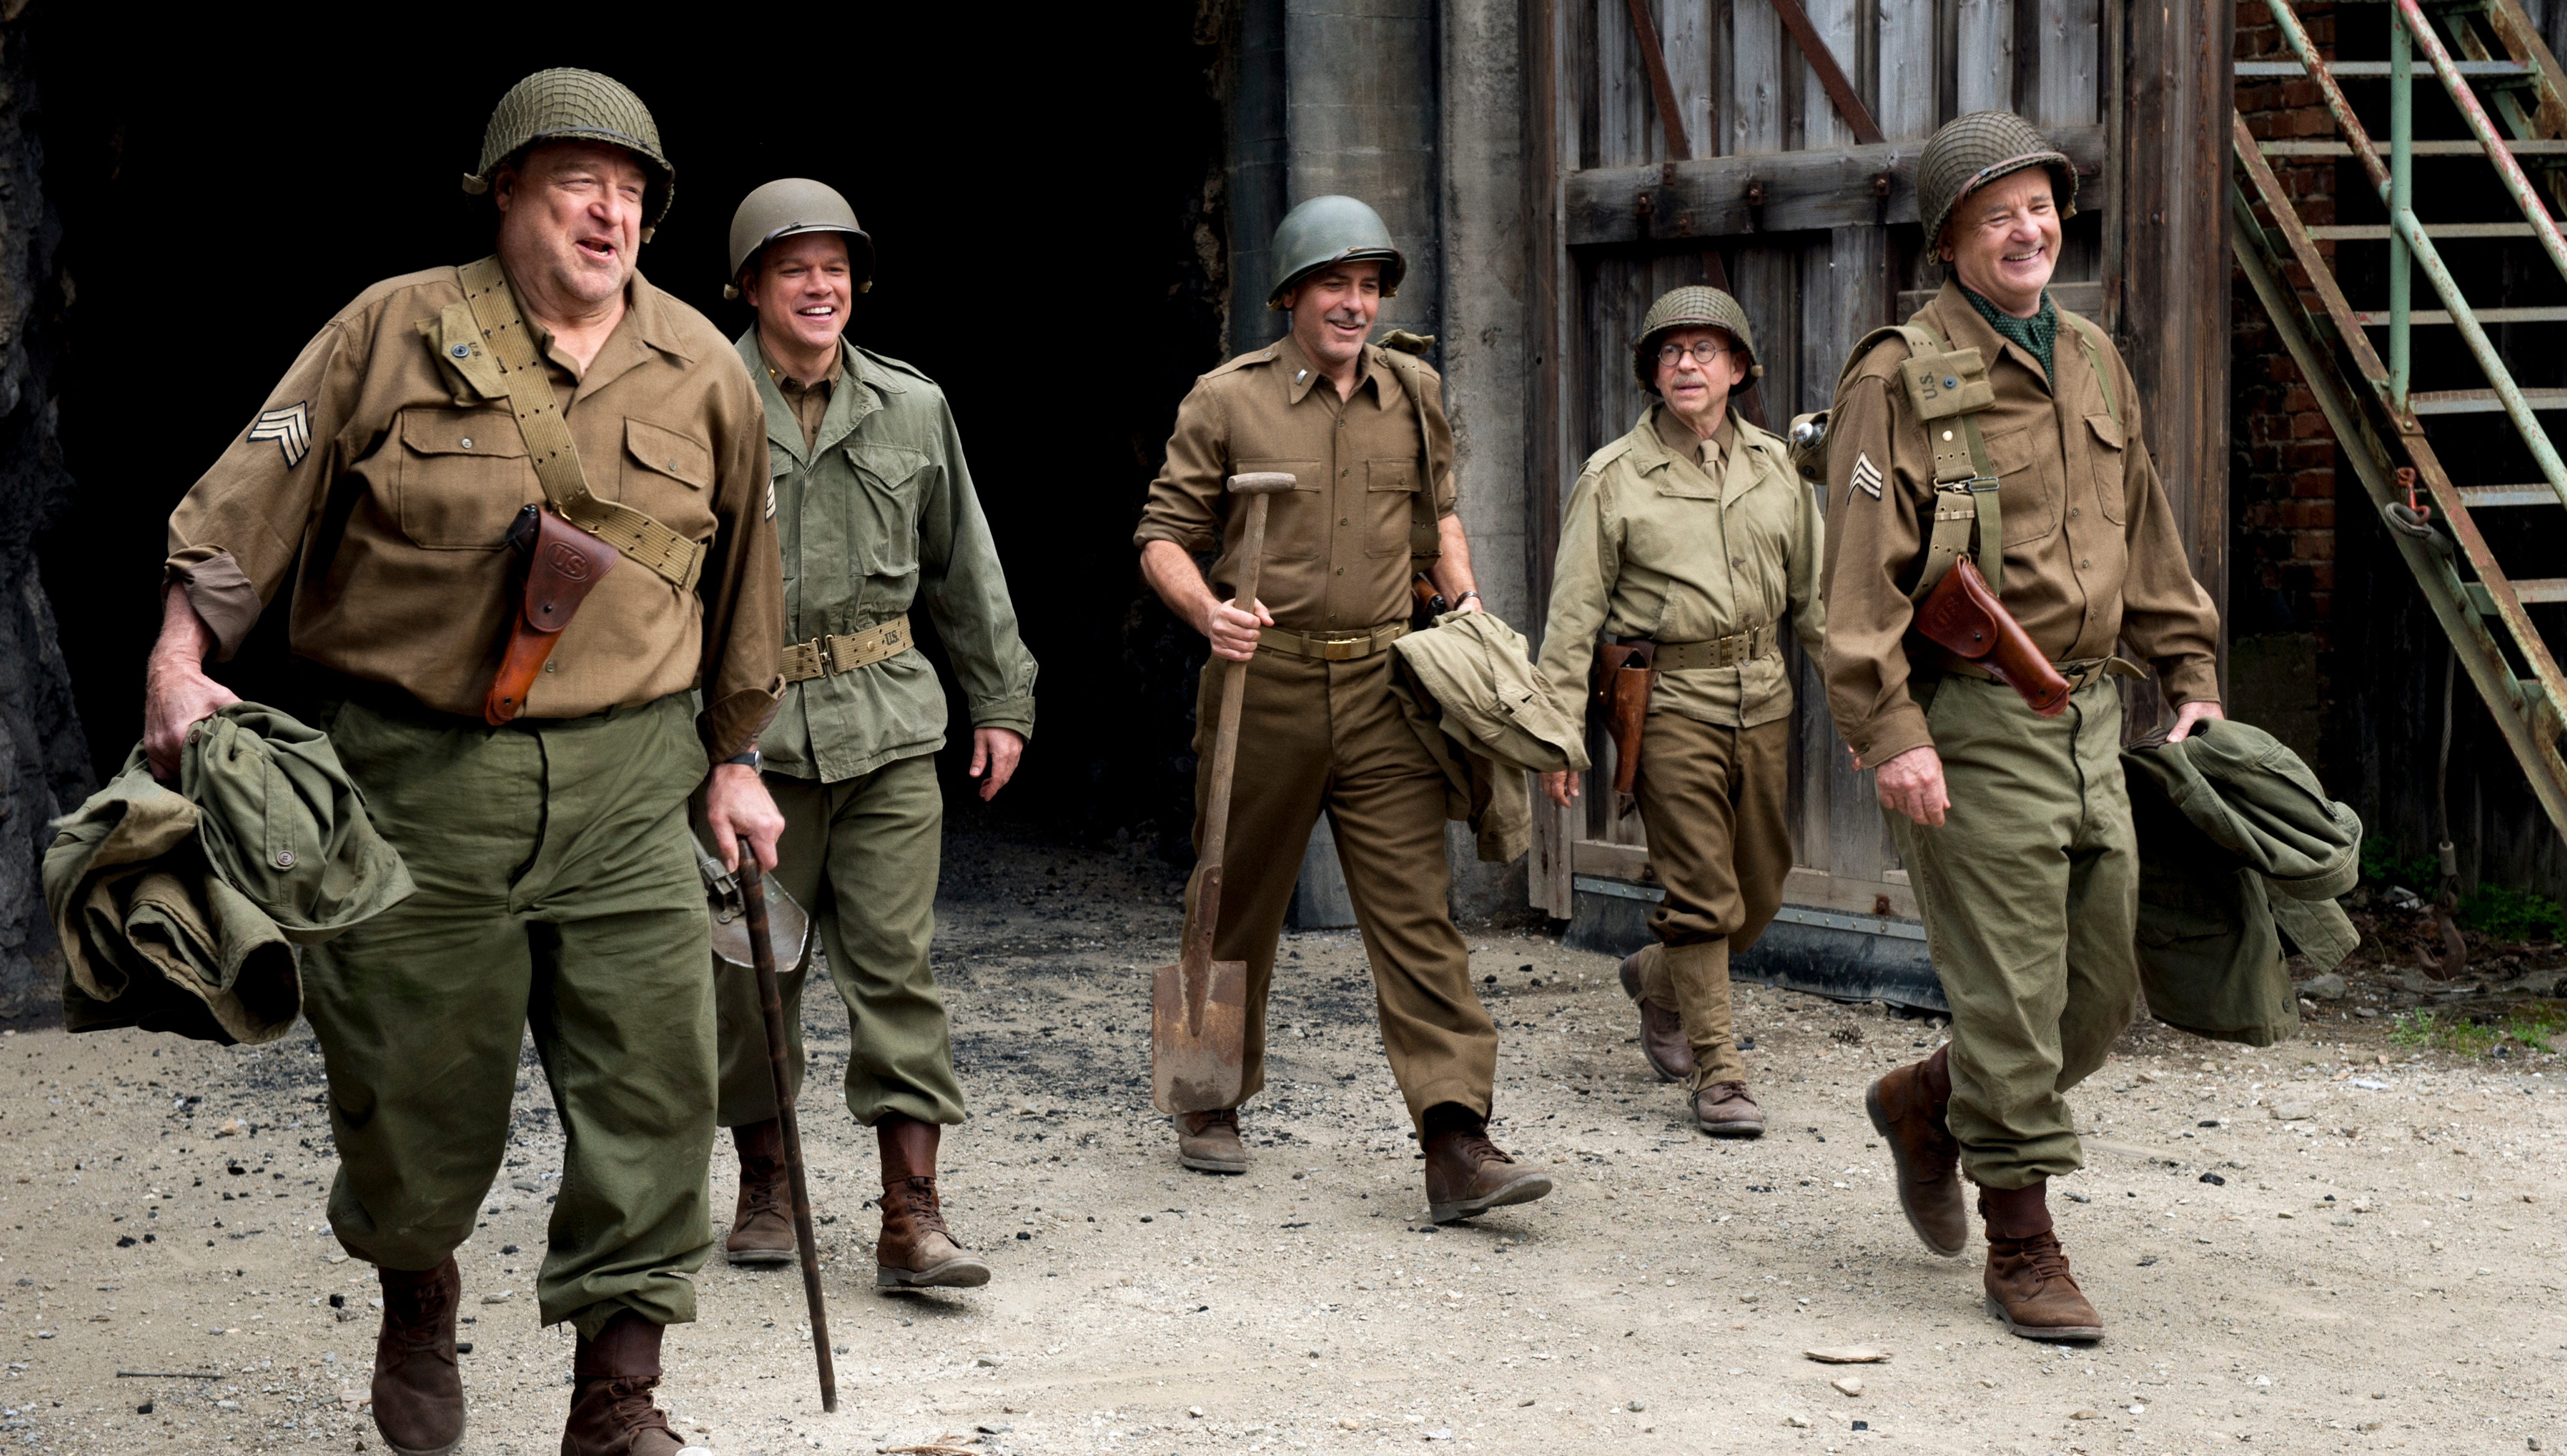 """John Goodman, left, Matt Damon, George Clooney, Bob Balaban and Bill Murray in a scene from 'The Monuments Men.' Though the film is about stolen art,  """"I don't own any art except paintings from my godkids,"""" Clooney says. """"Which I'm convinced are priceless."""""""